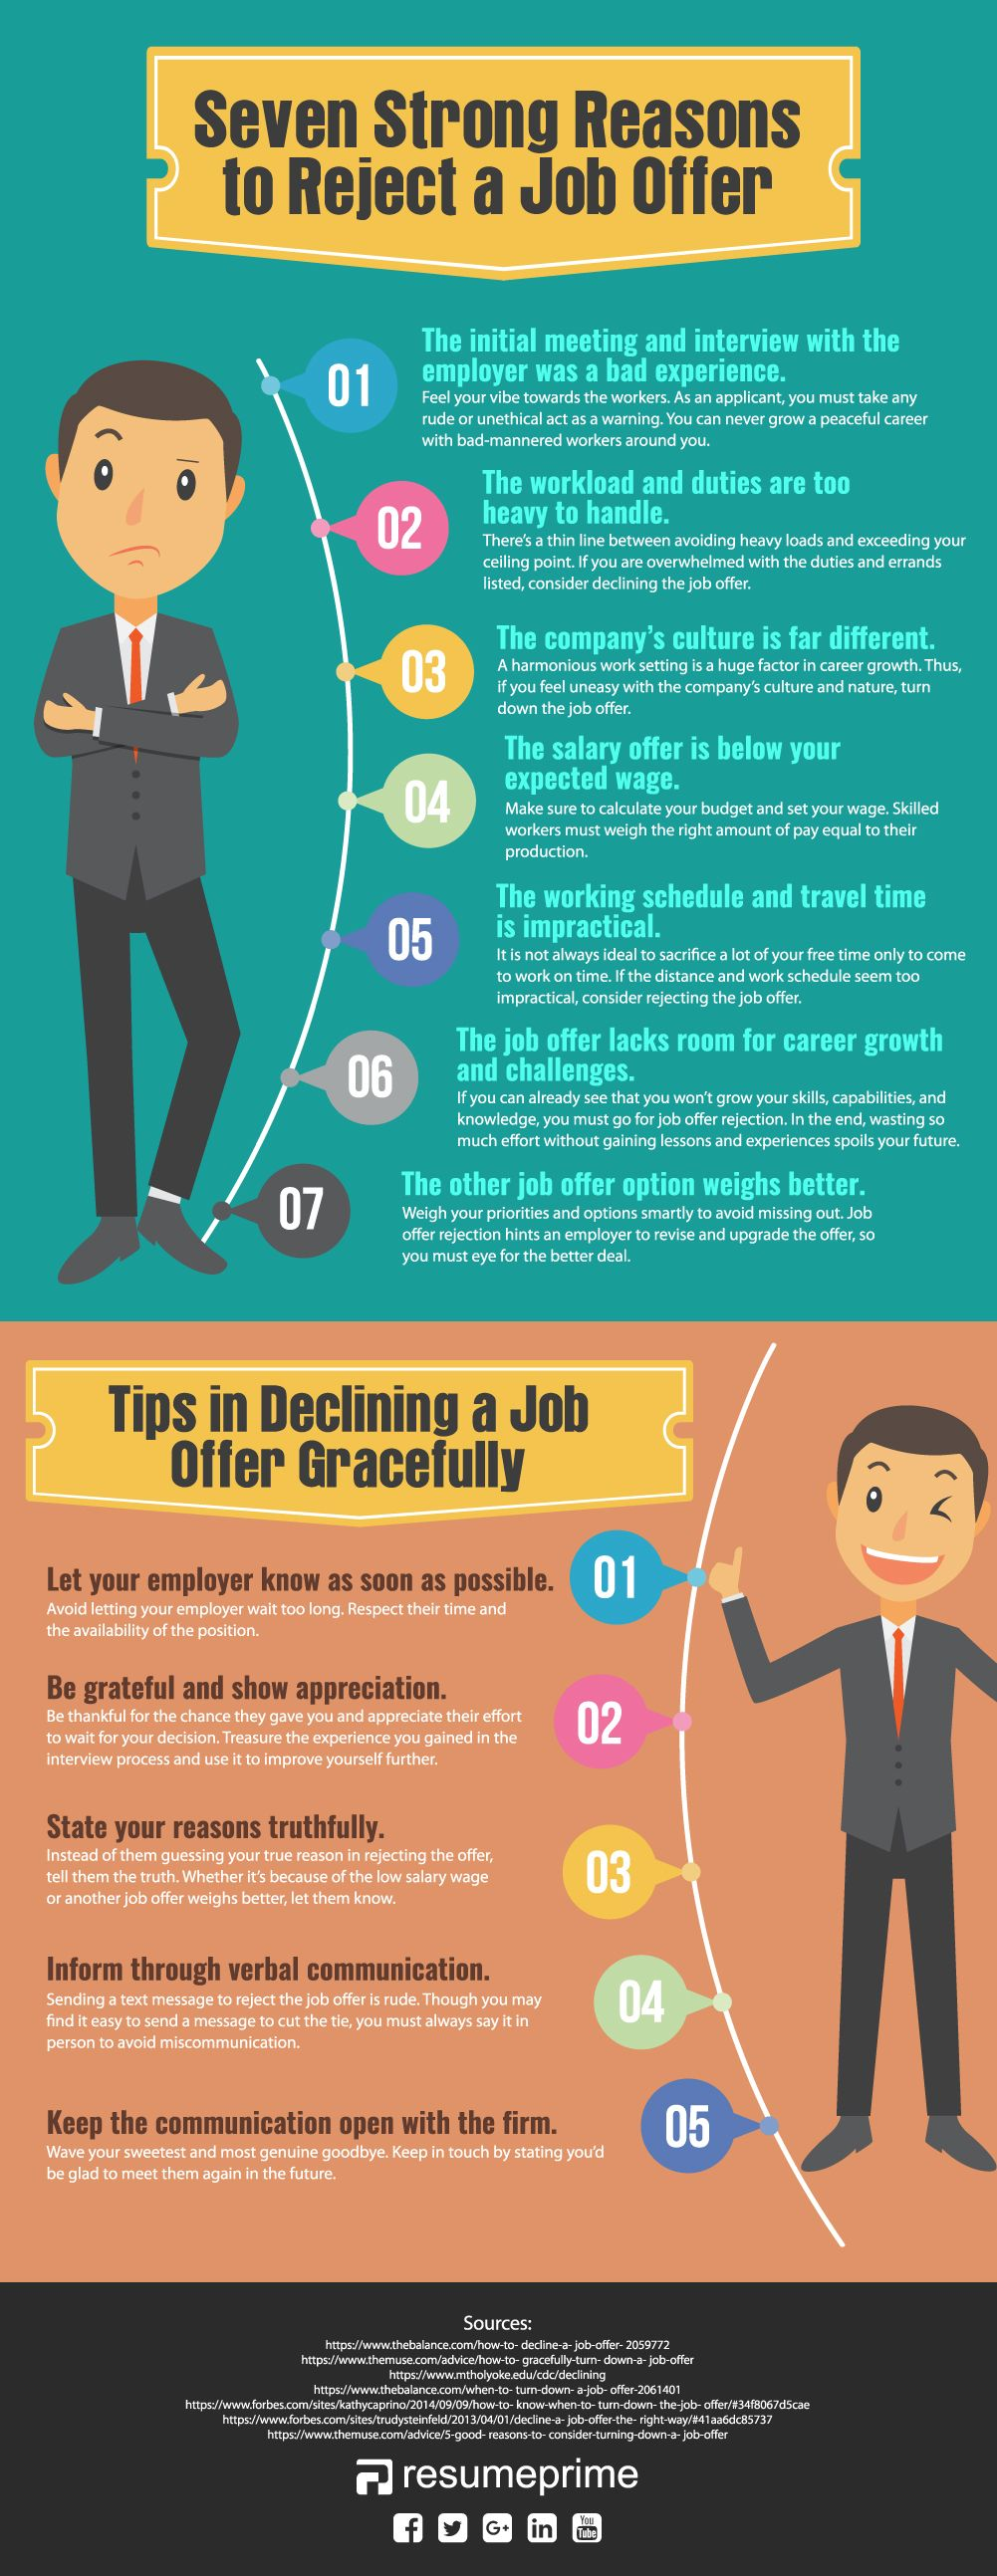 Seven Strong Reasons To Reject A Job Offer Job Offer Job Career Advice Resume